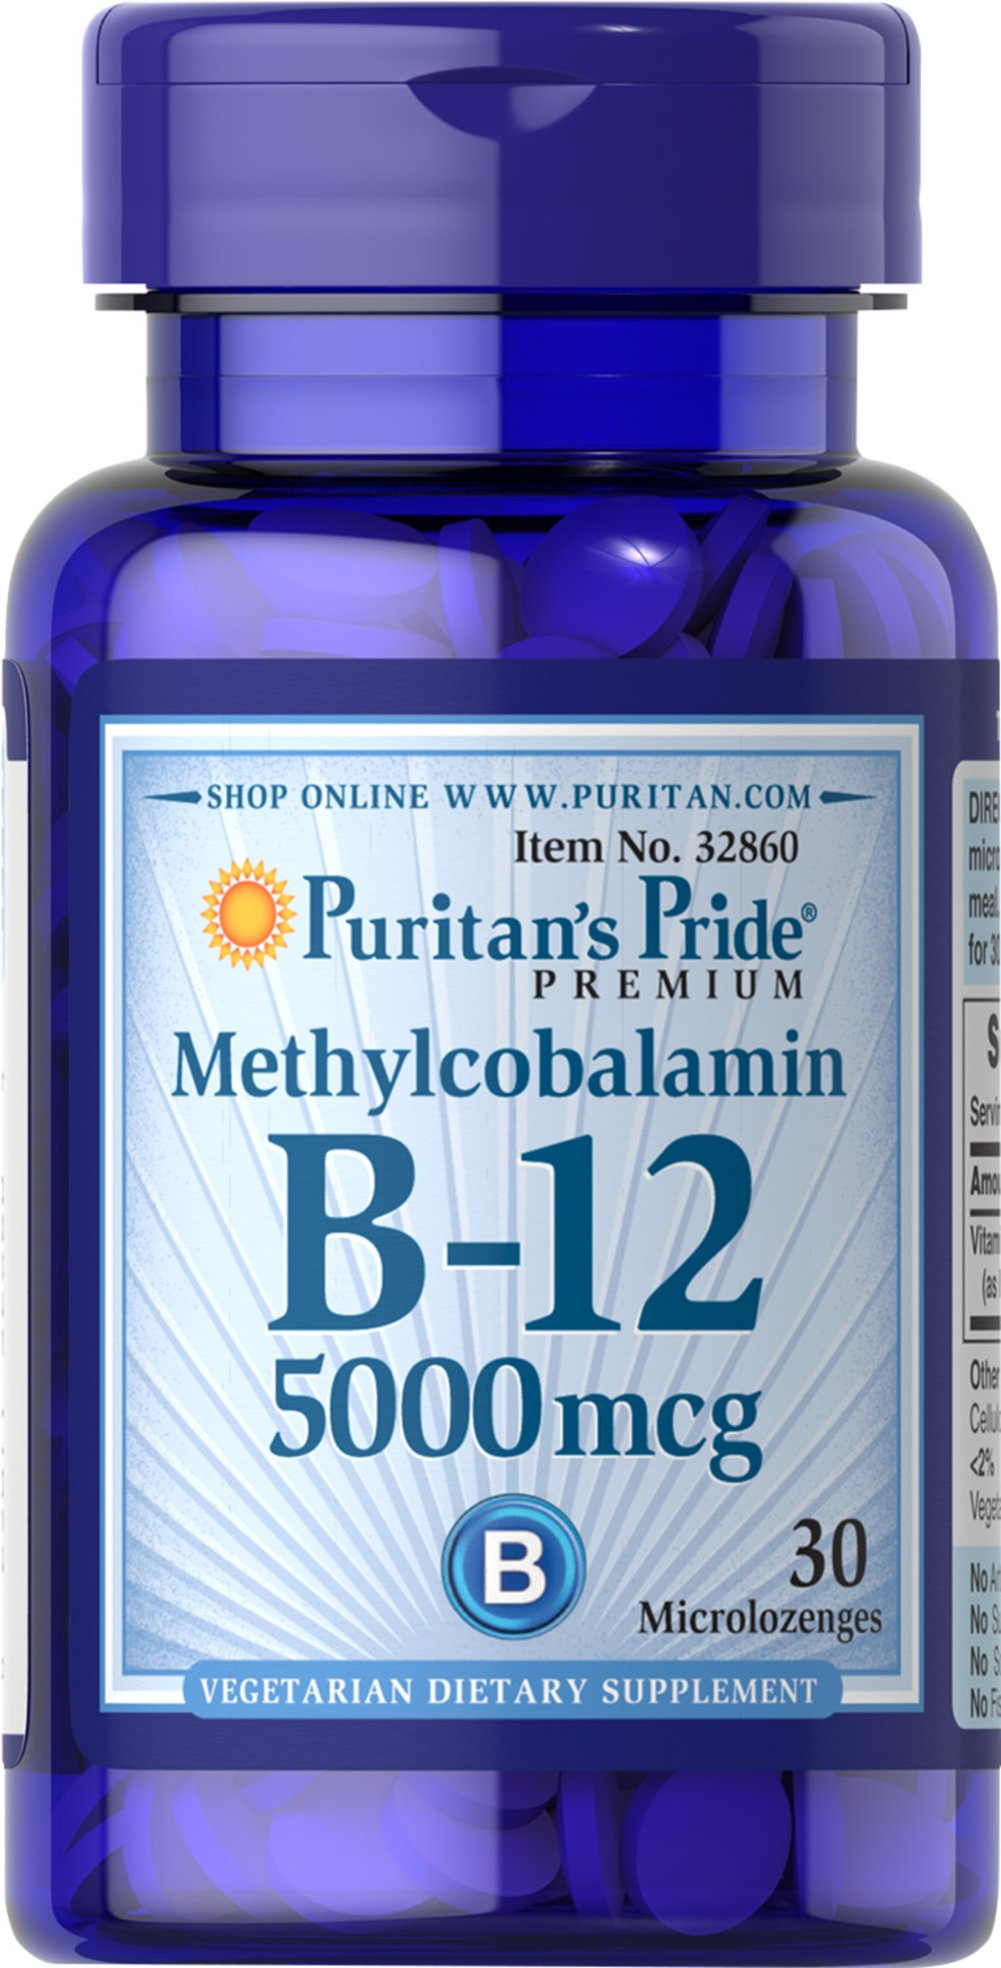 Methylcobalamin Vitamin B-12 5000 mcg <p>Methylcobalamin is a more predominant and active form of Vitamin B-12</p>  <p>Regular Vitamin B-12 supplements must be converted in the body to Methylcobalamin before they can provide any benefits – taking Methylcobalamin allows you to bypass this step for quicker absorption</p>  <p>This biologically active form of B 12 promotes heart health and energy metabolism**</p> 30 Microlozenges 5000 mcg $12.99